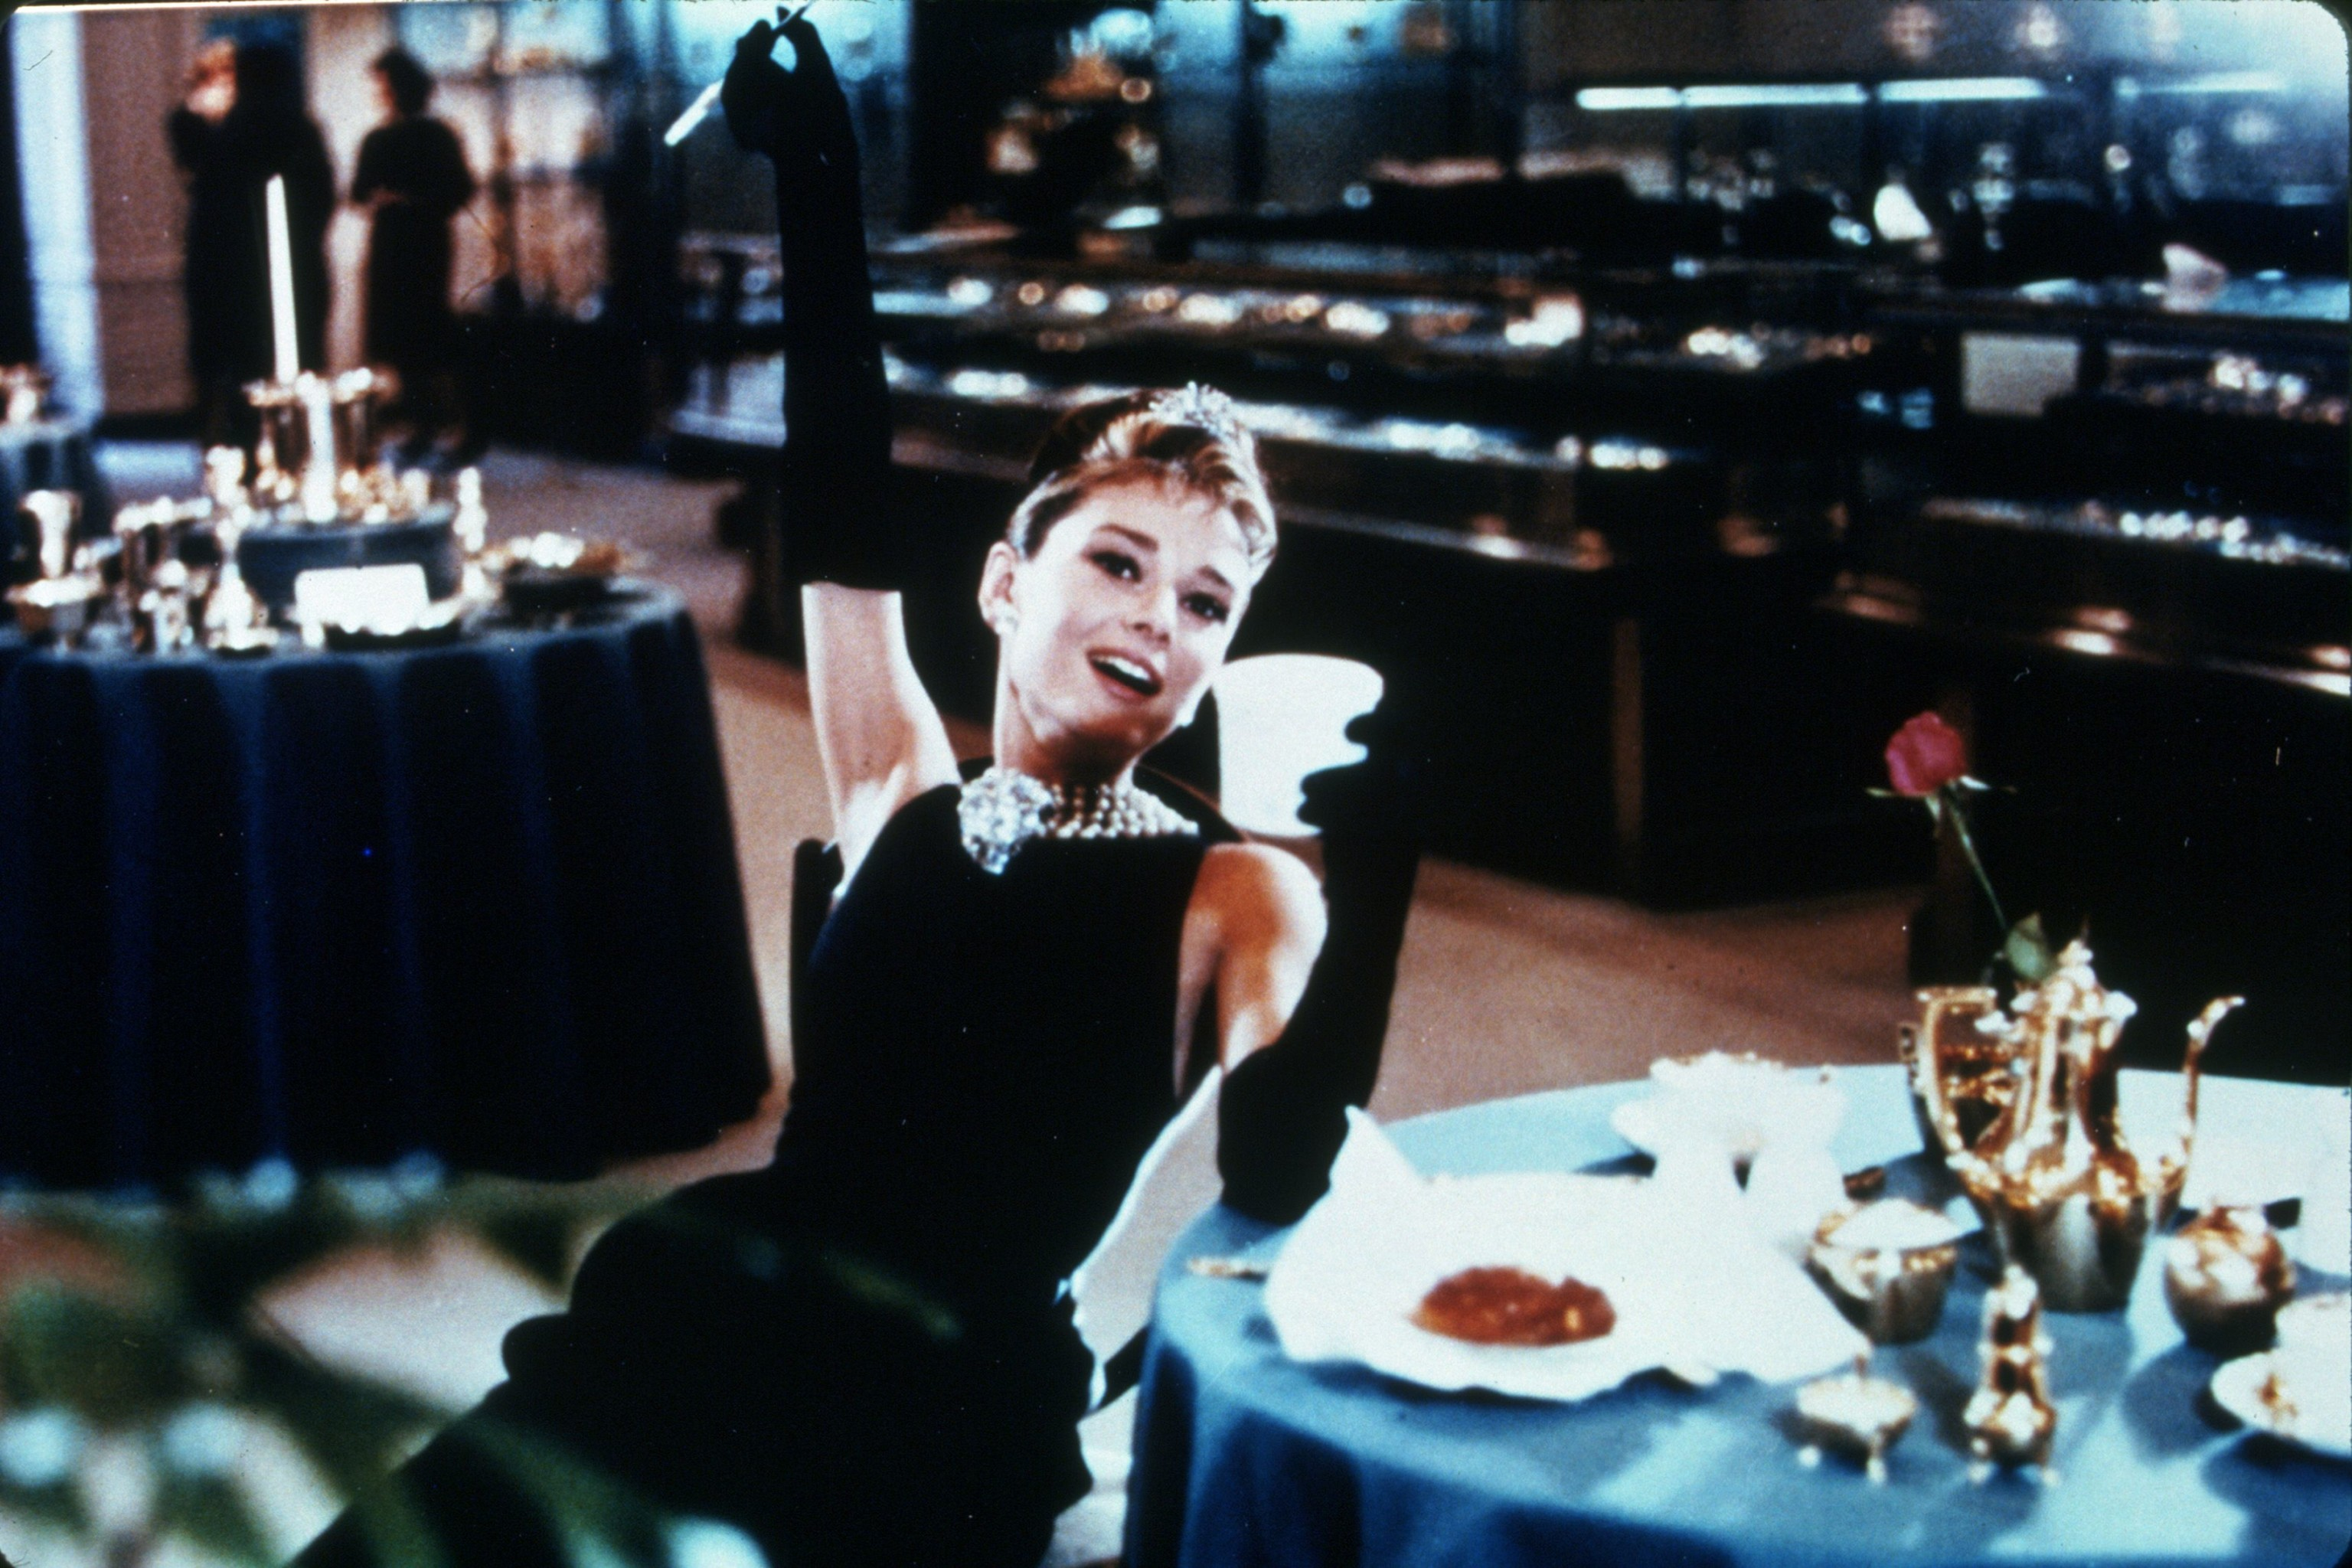 FILM STILLS OF 'BREAKFAST AT TIFFANY'S' WITH 1961, AUDREY HEPBURN, RECLINING, CELEBRATING, JOYFUL, HAPPY, ARM UP, GLOVES, DRINKING, JEWELLERY, COFFEE, WEALTHY, VICTORIOUS, JEWELRY IN 1961